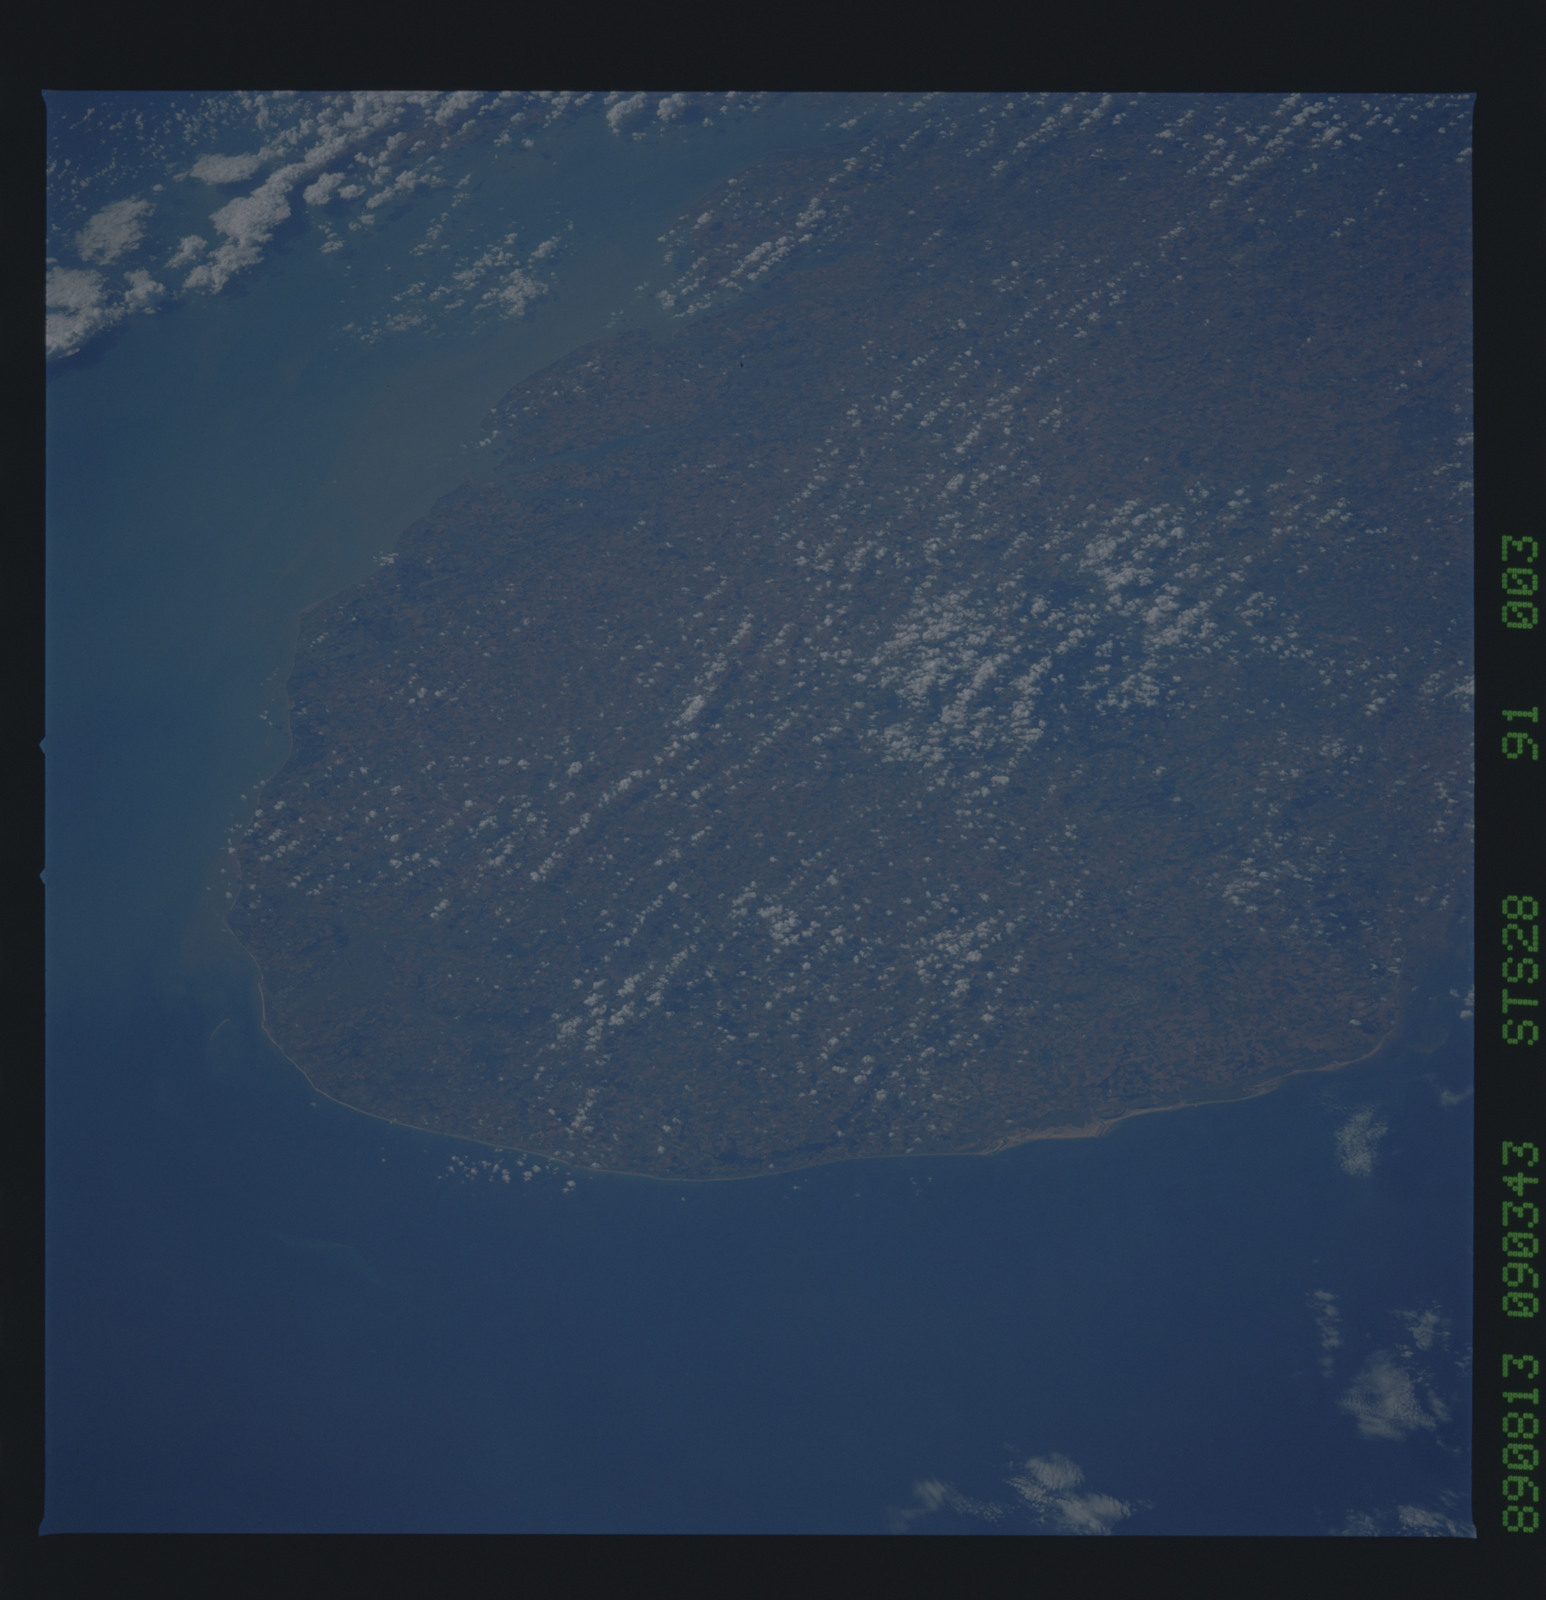 S28-91-003 - STS-028 - STS-28 earth observations